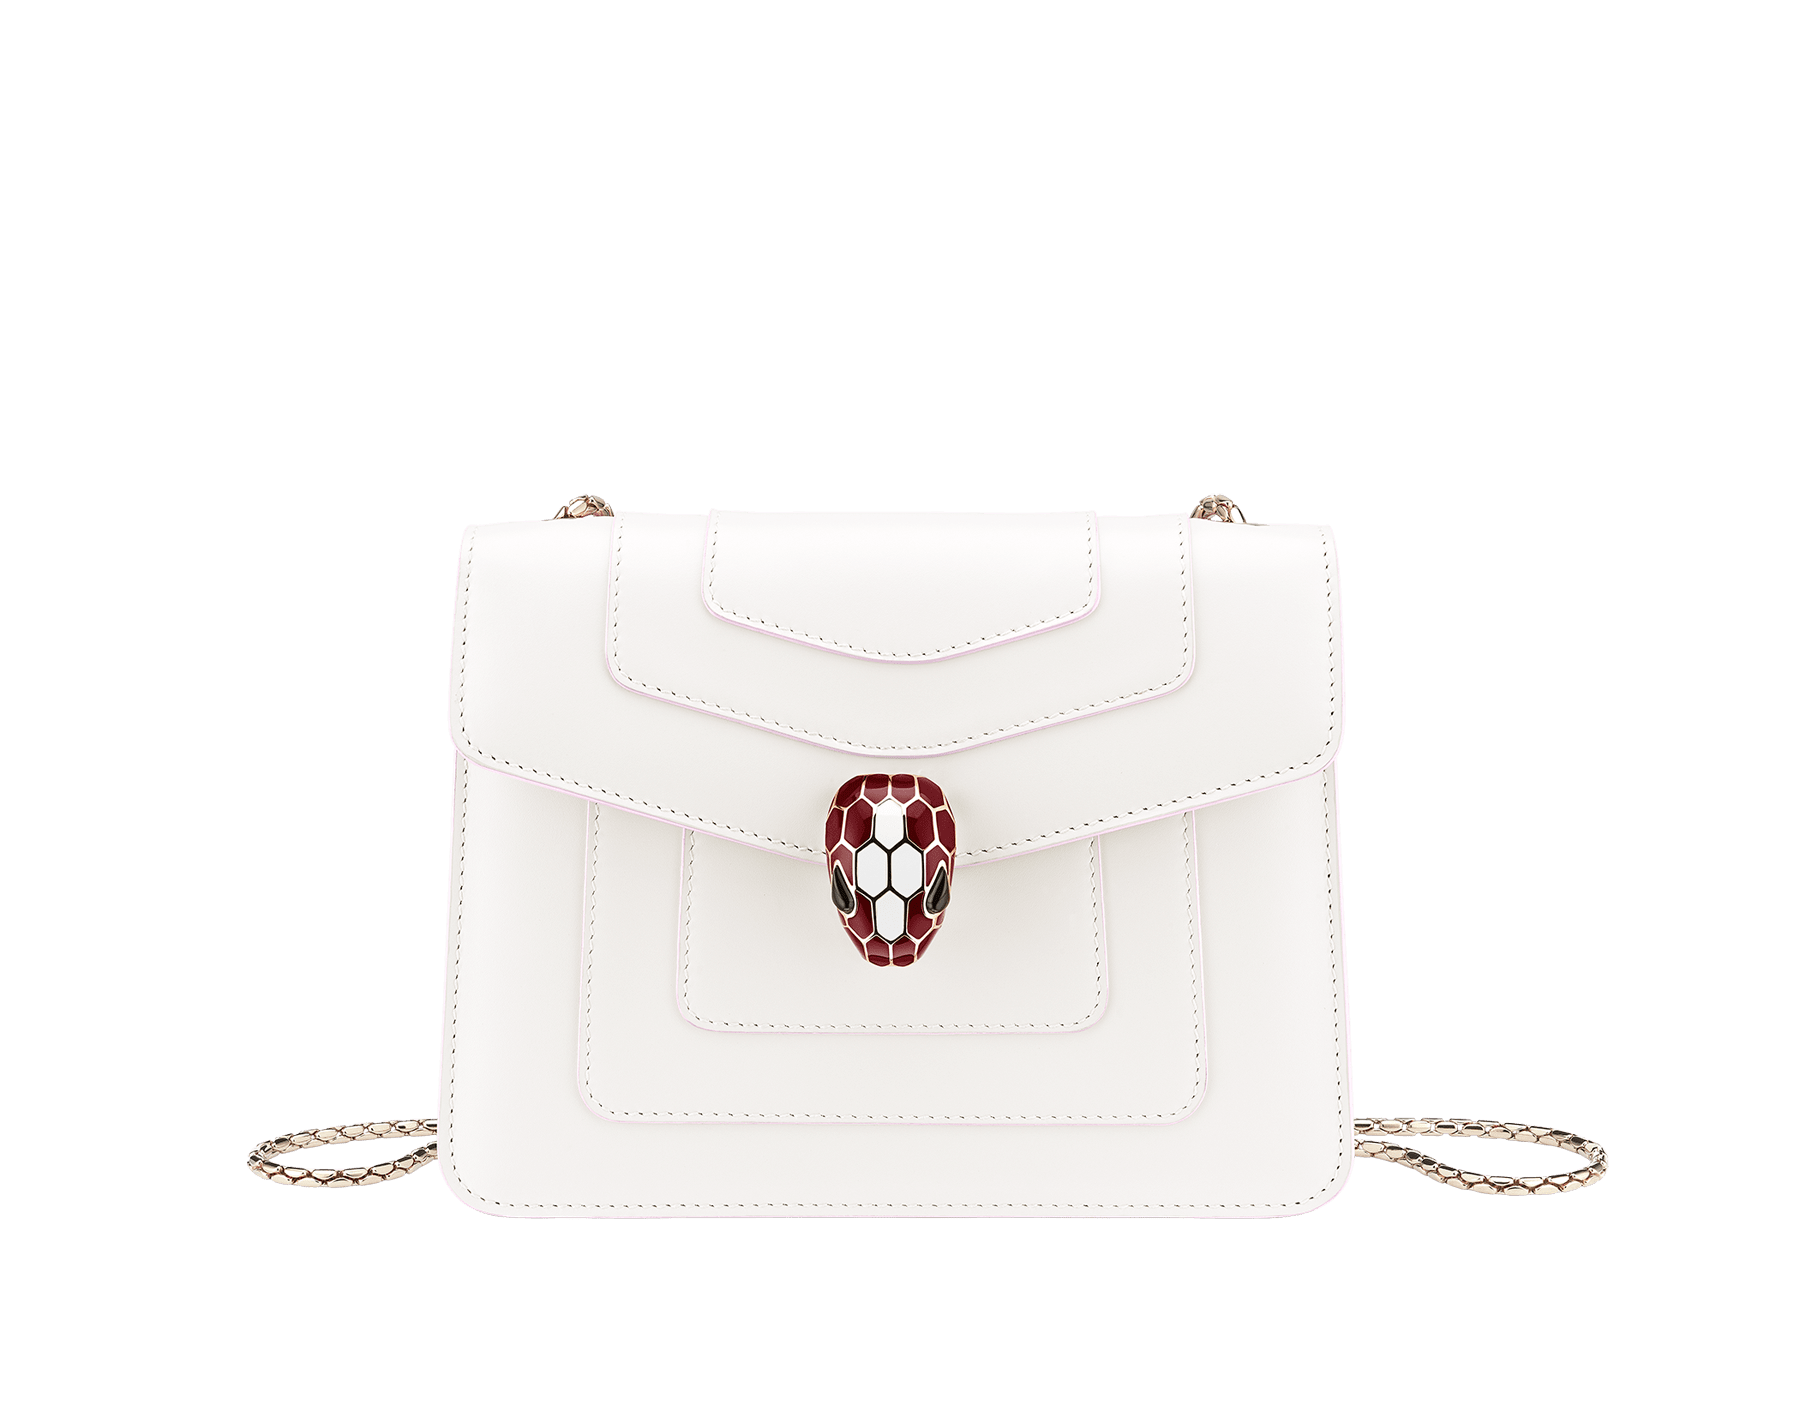 """Serpenti Forever"" crossbody bag in white agate calf leather body and ruby red calf leather sides. Iconic snakehead closure in light gold plated brass enriched with ruby red and white agate enamel and black onyx eyes. 289198 image 1"